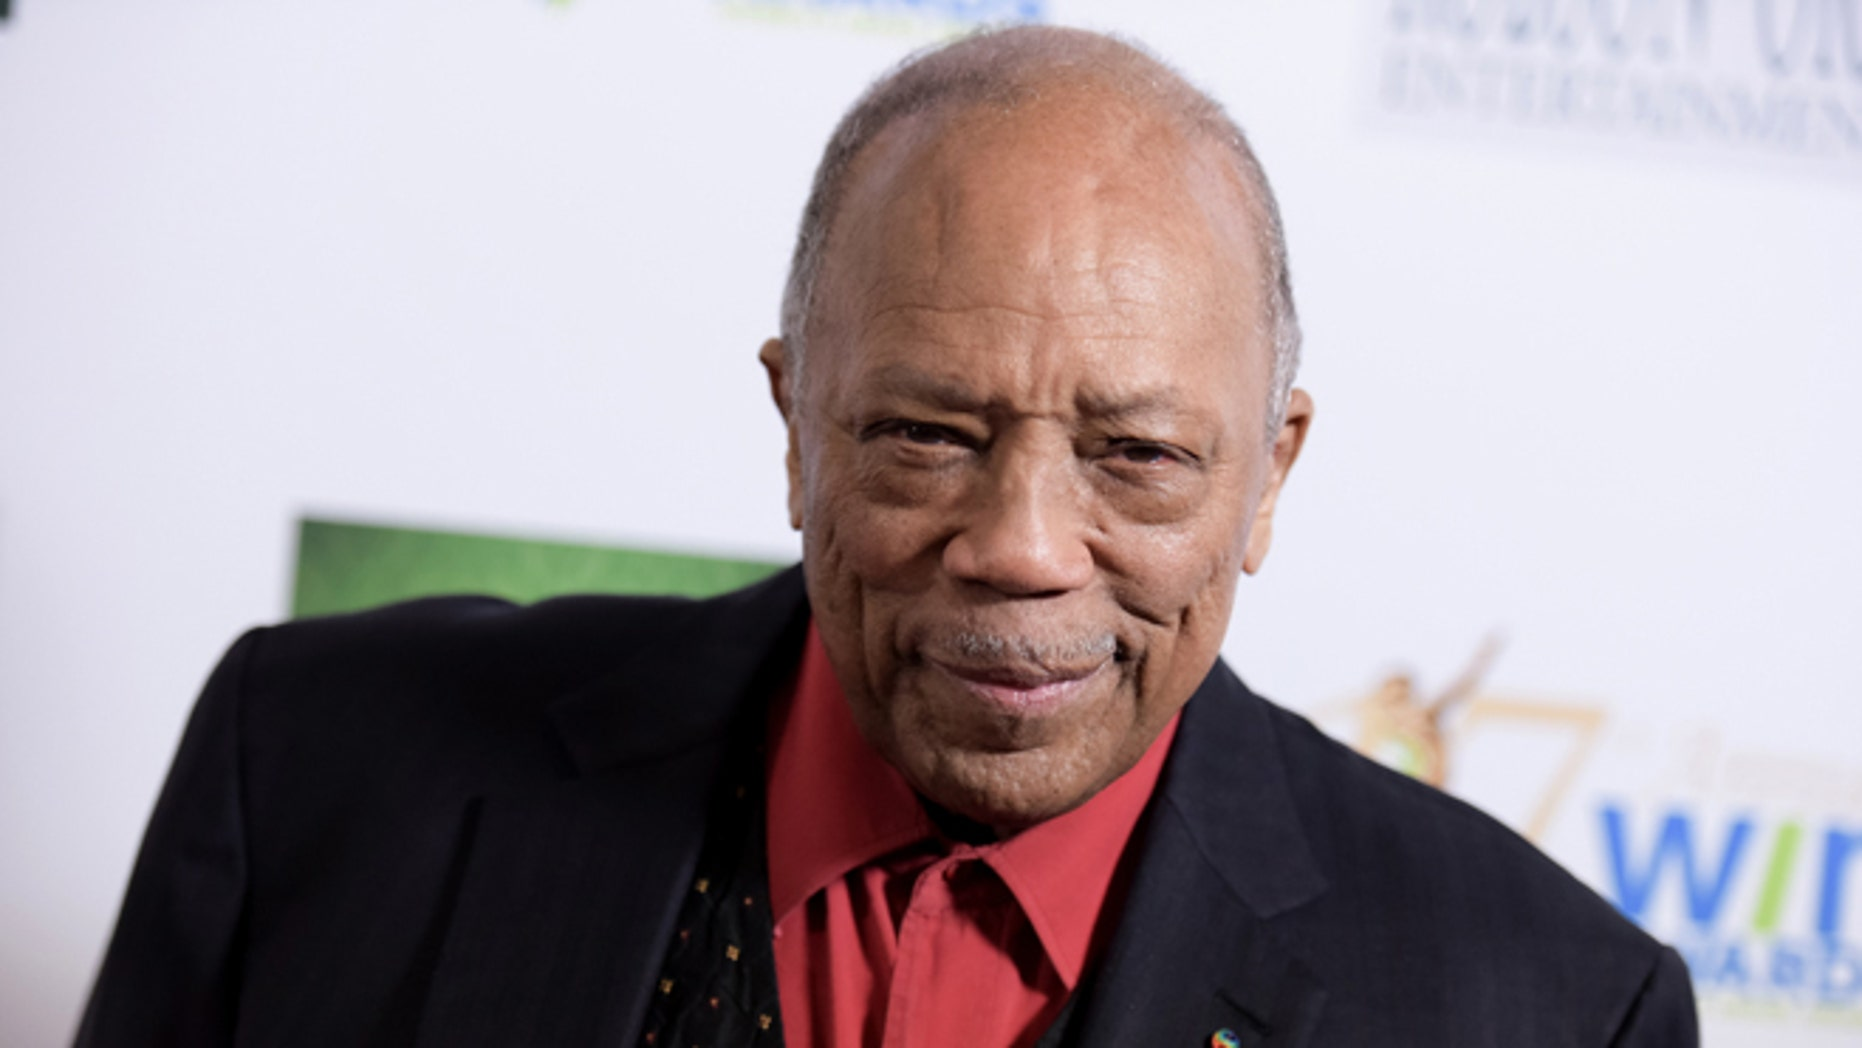 Feb. 10, 2016. Quincy Jones arrives at the 17th Annual Womens Image Awards held at Royce Hall, in Los Angeles.